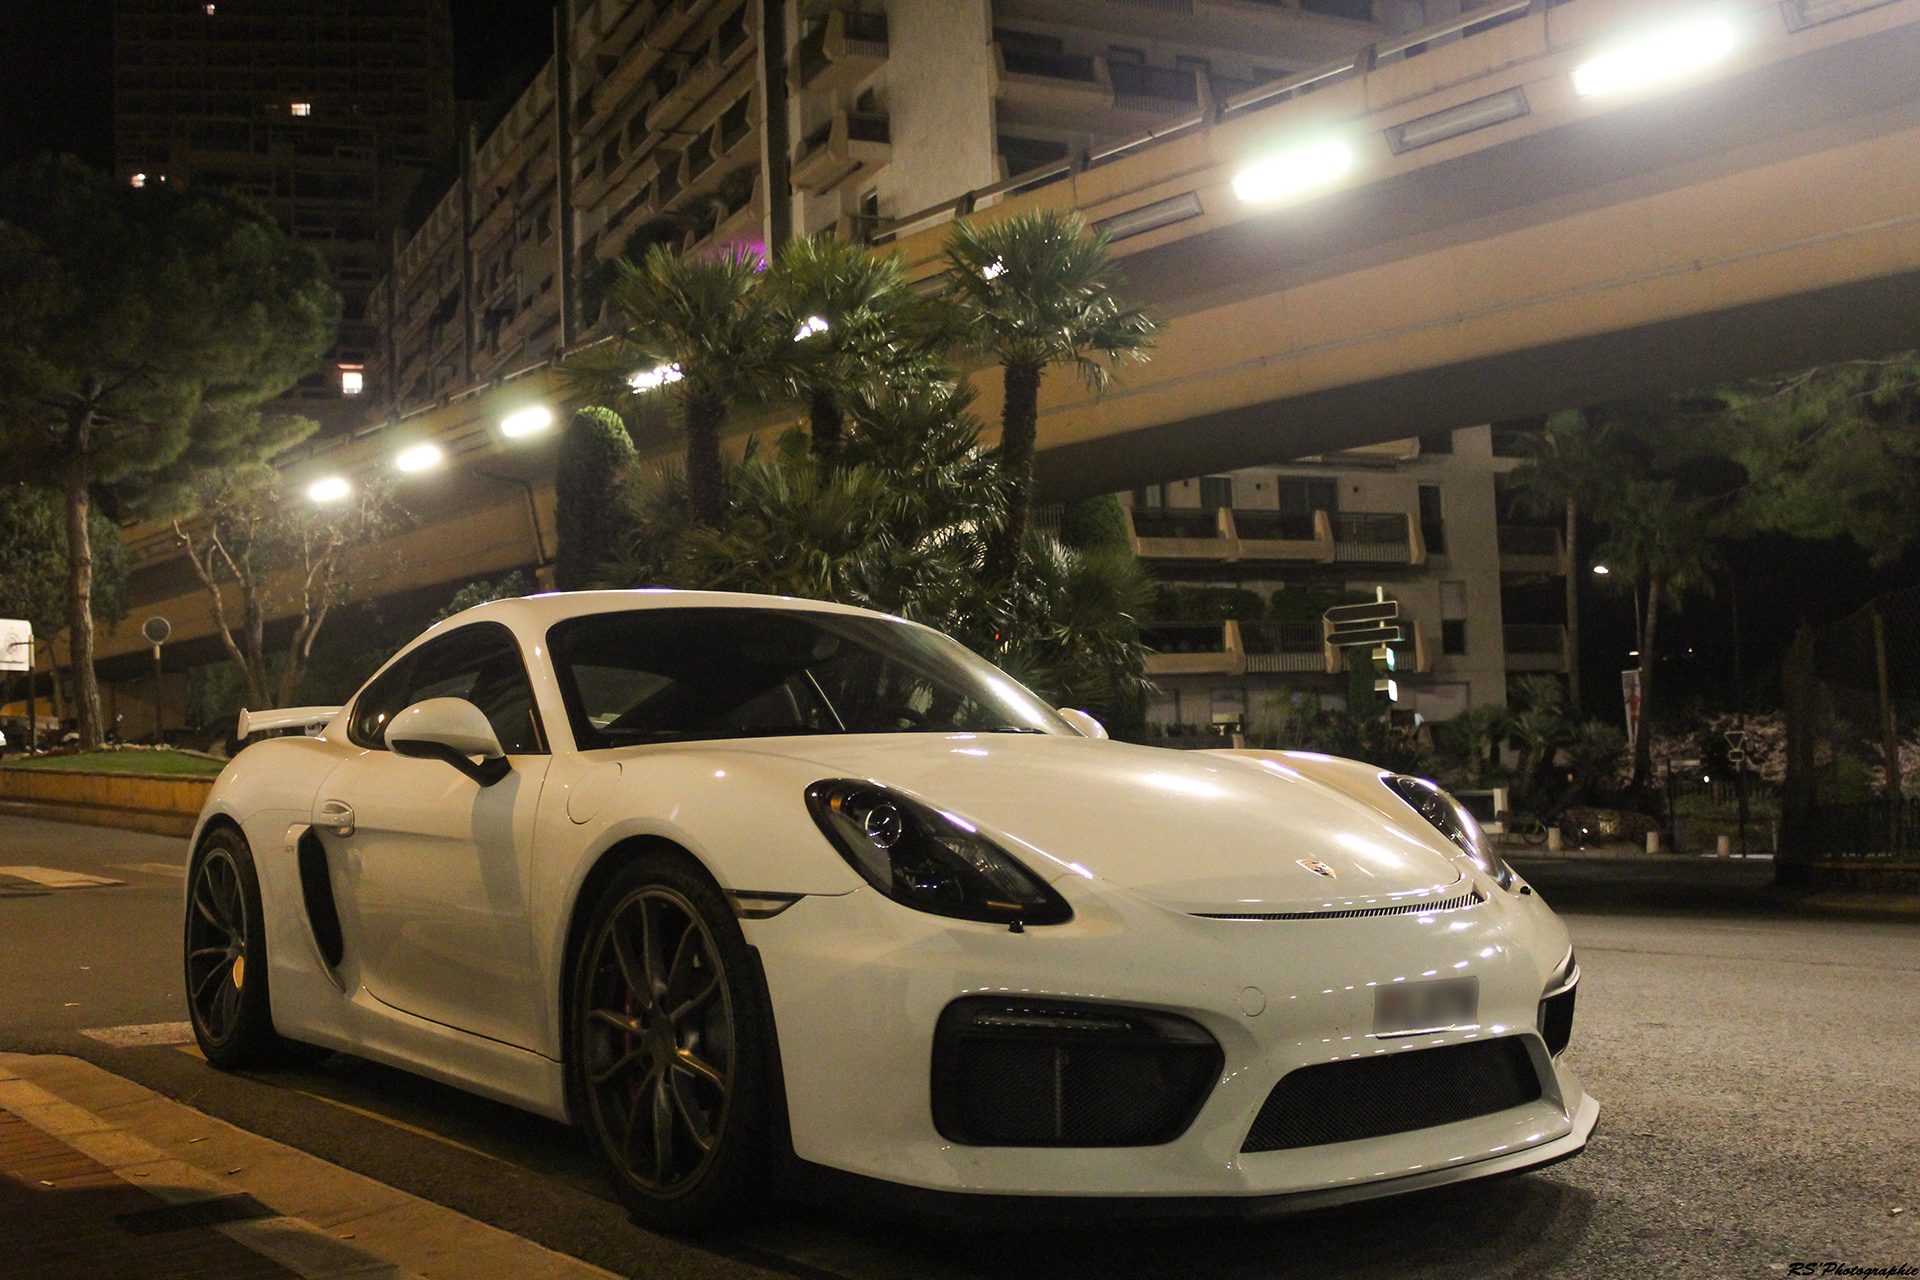 Porsche Cayman GT4 front - Top Marques Monaco 2016 - Arnaud Demasier RS Photographie